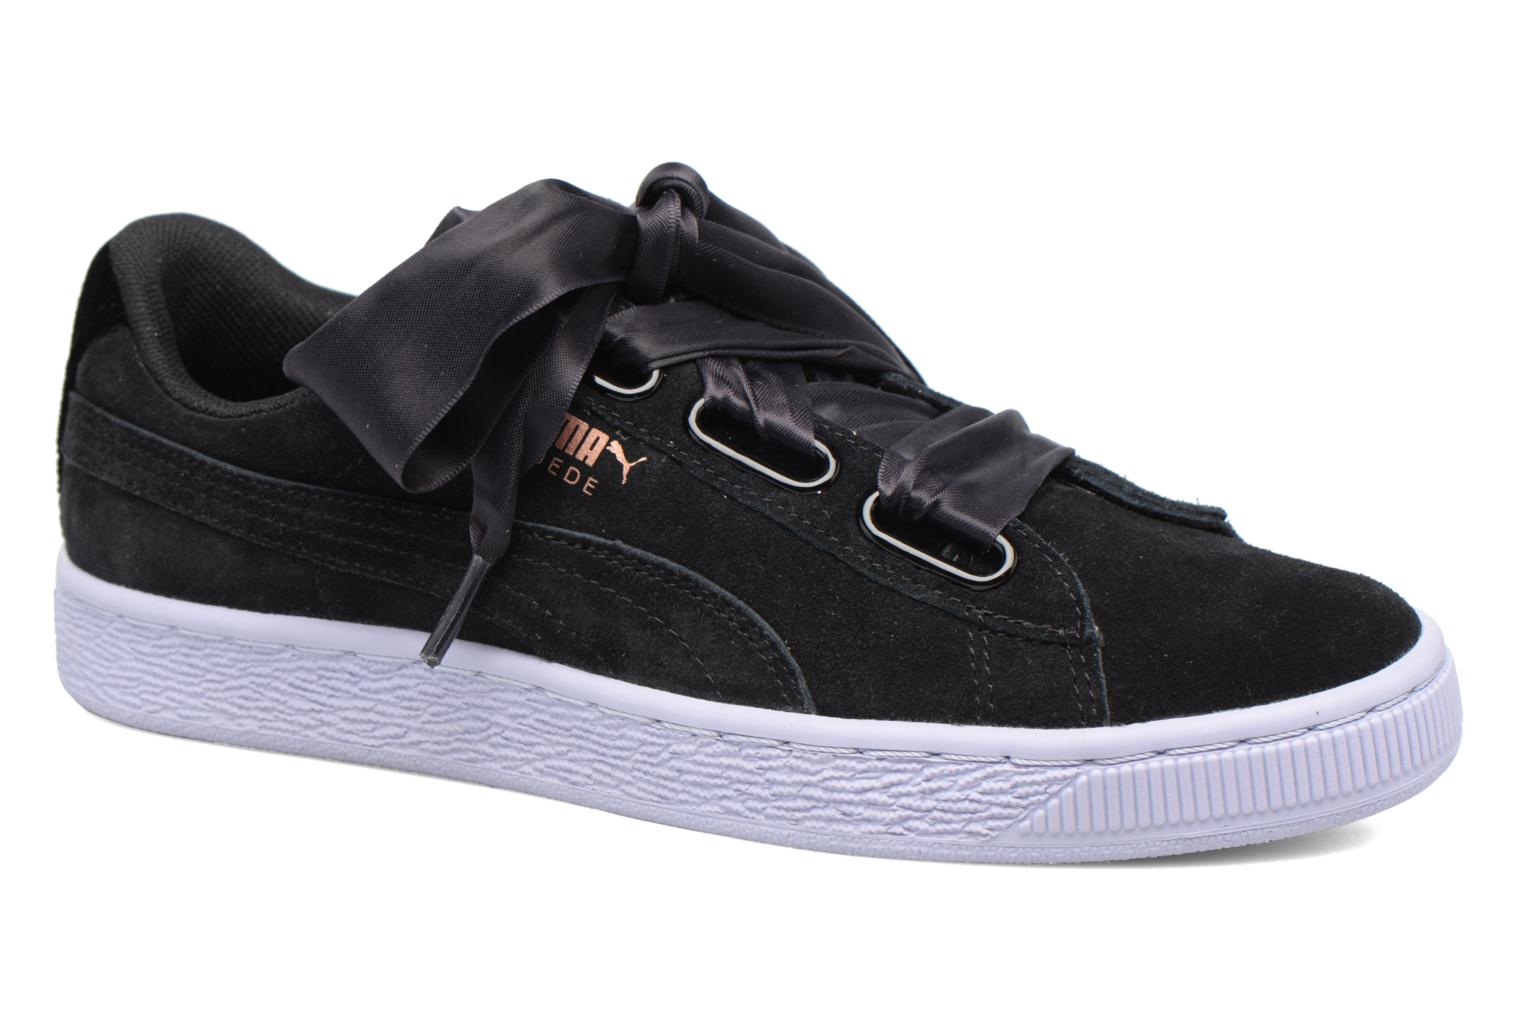 buy popular 1b742 b02e1 Wns Black Vr Puma heart Suede aIqIzd for finished ...